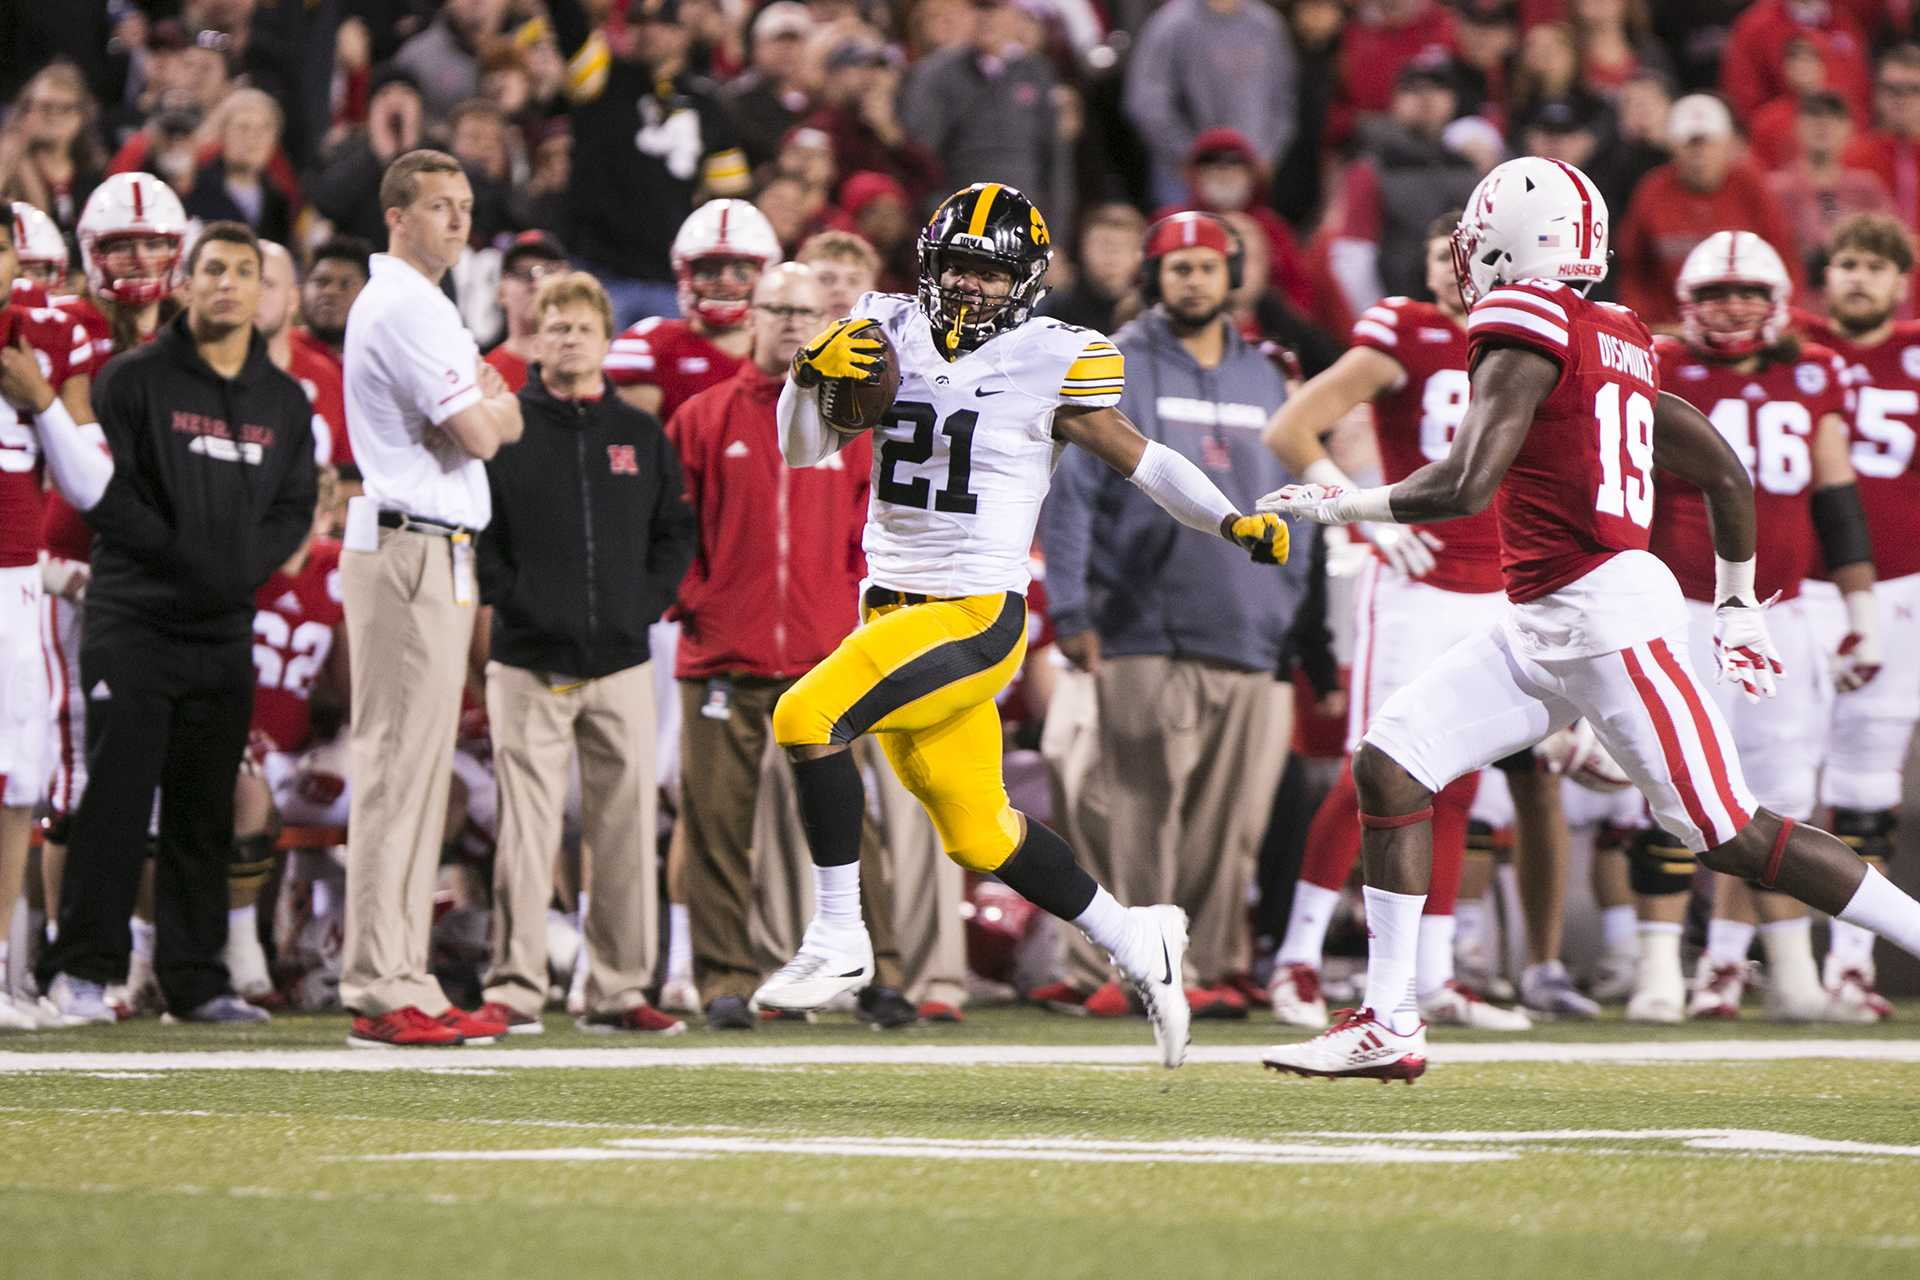 Point/Counterpoint: Who will be Iowa's premier running back?